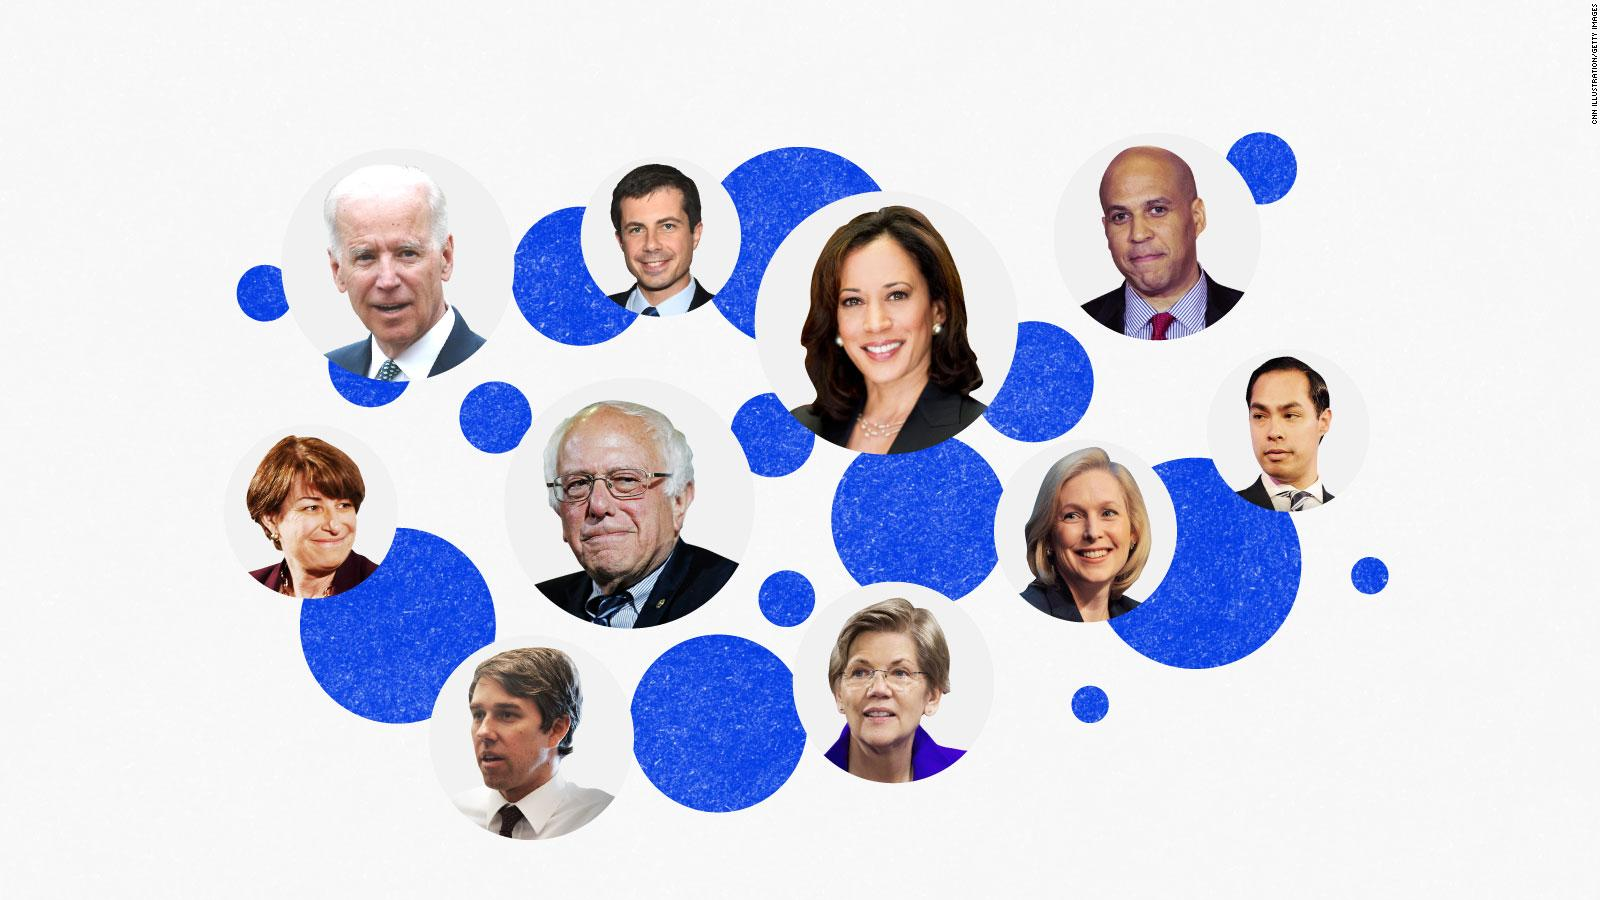 best cuts coupons 2020 Mayor Pete' Buttigieg surges into top 10 in our 2020 rankings